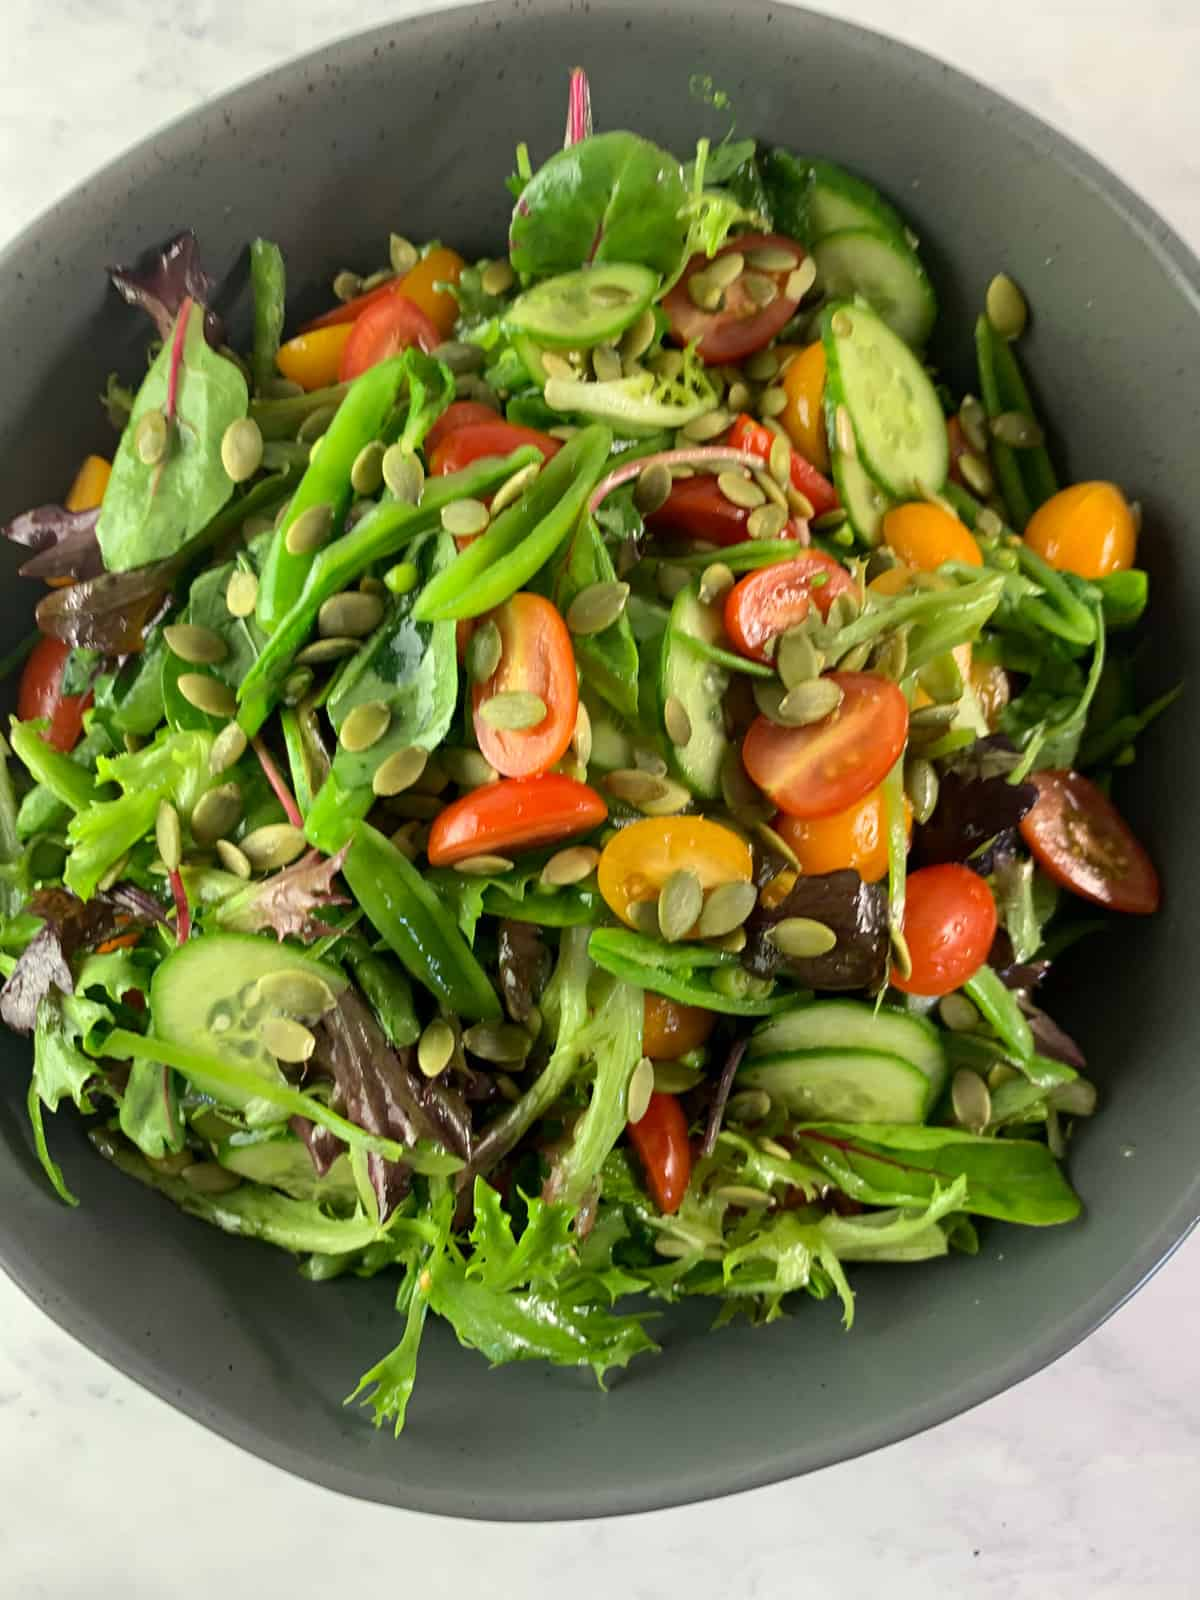 CLOSE UP OF SPRING MIX SALAD WITH PEAS, TOMATOES, CUCUMBERS AND SEEDS